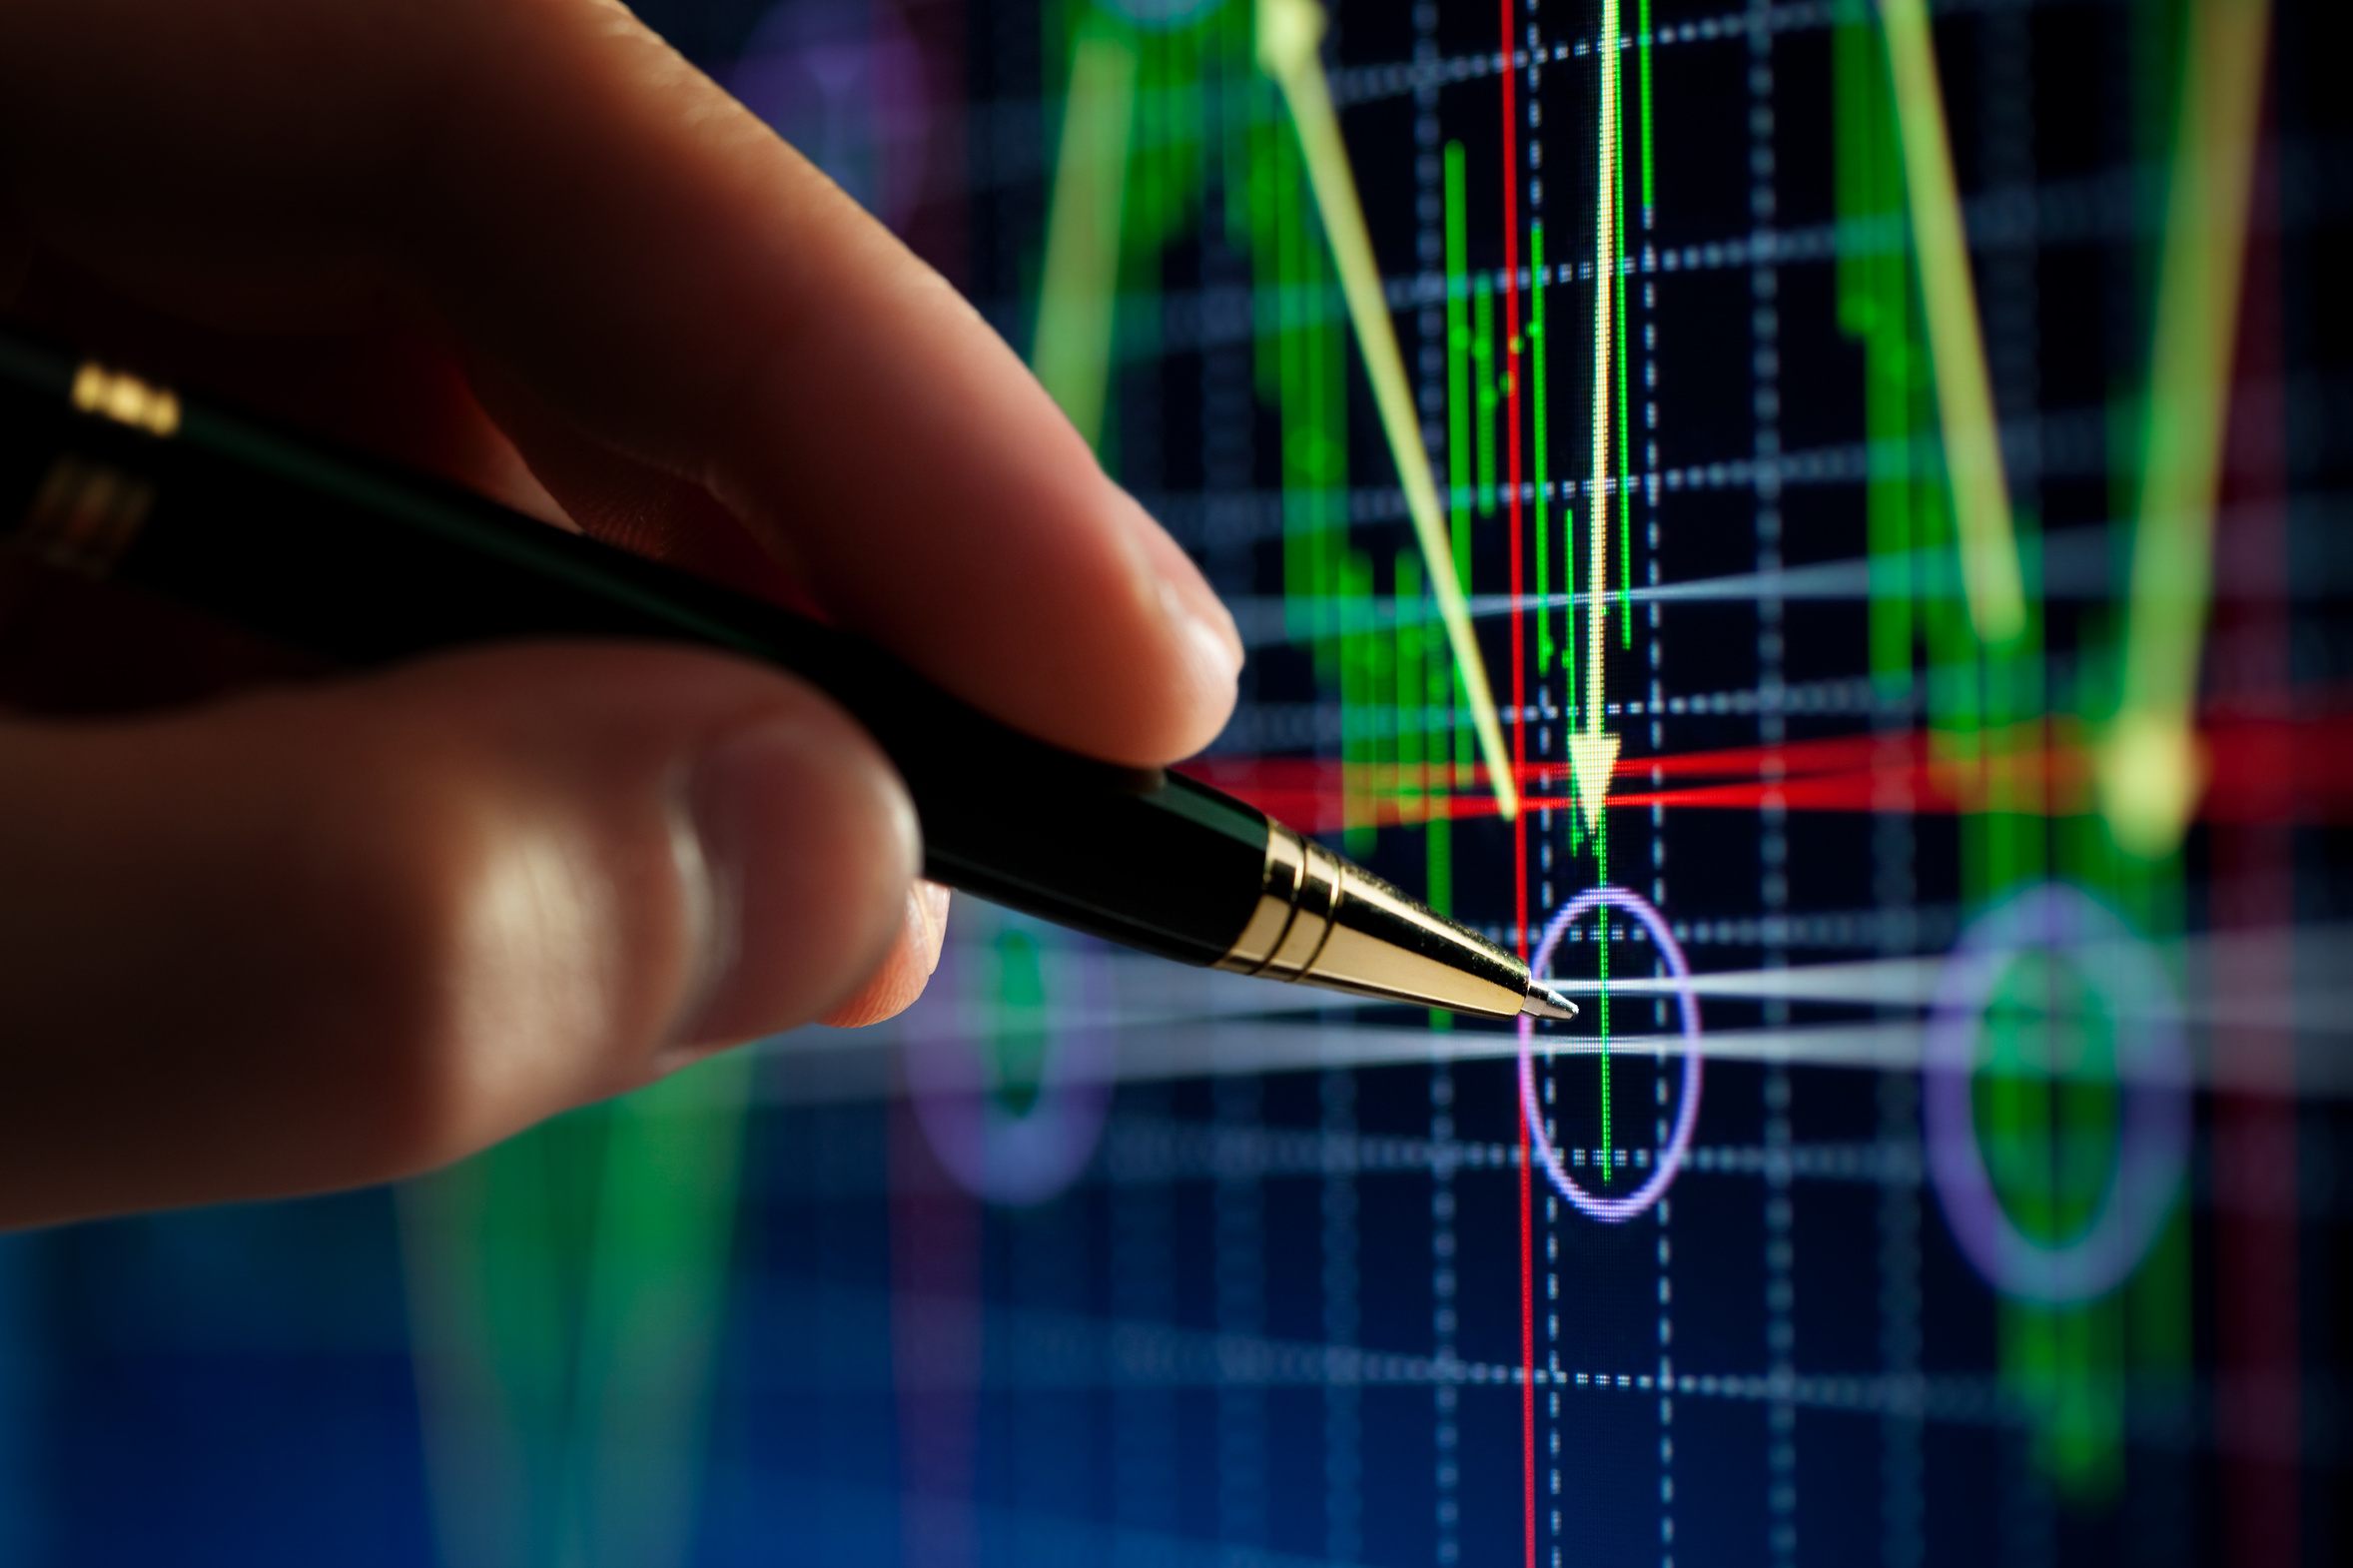 hand and pen pointer, chart